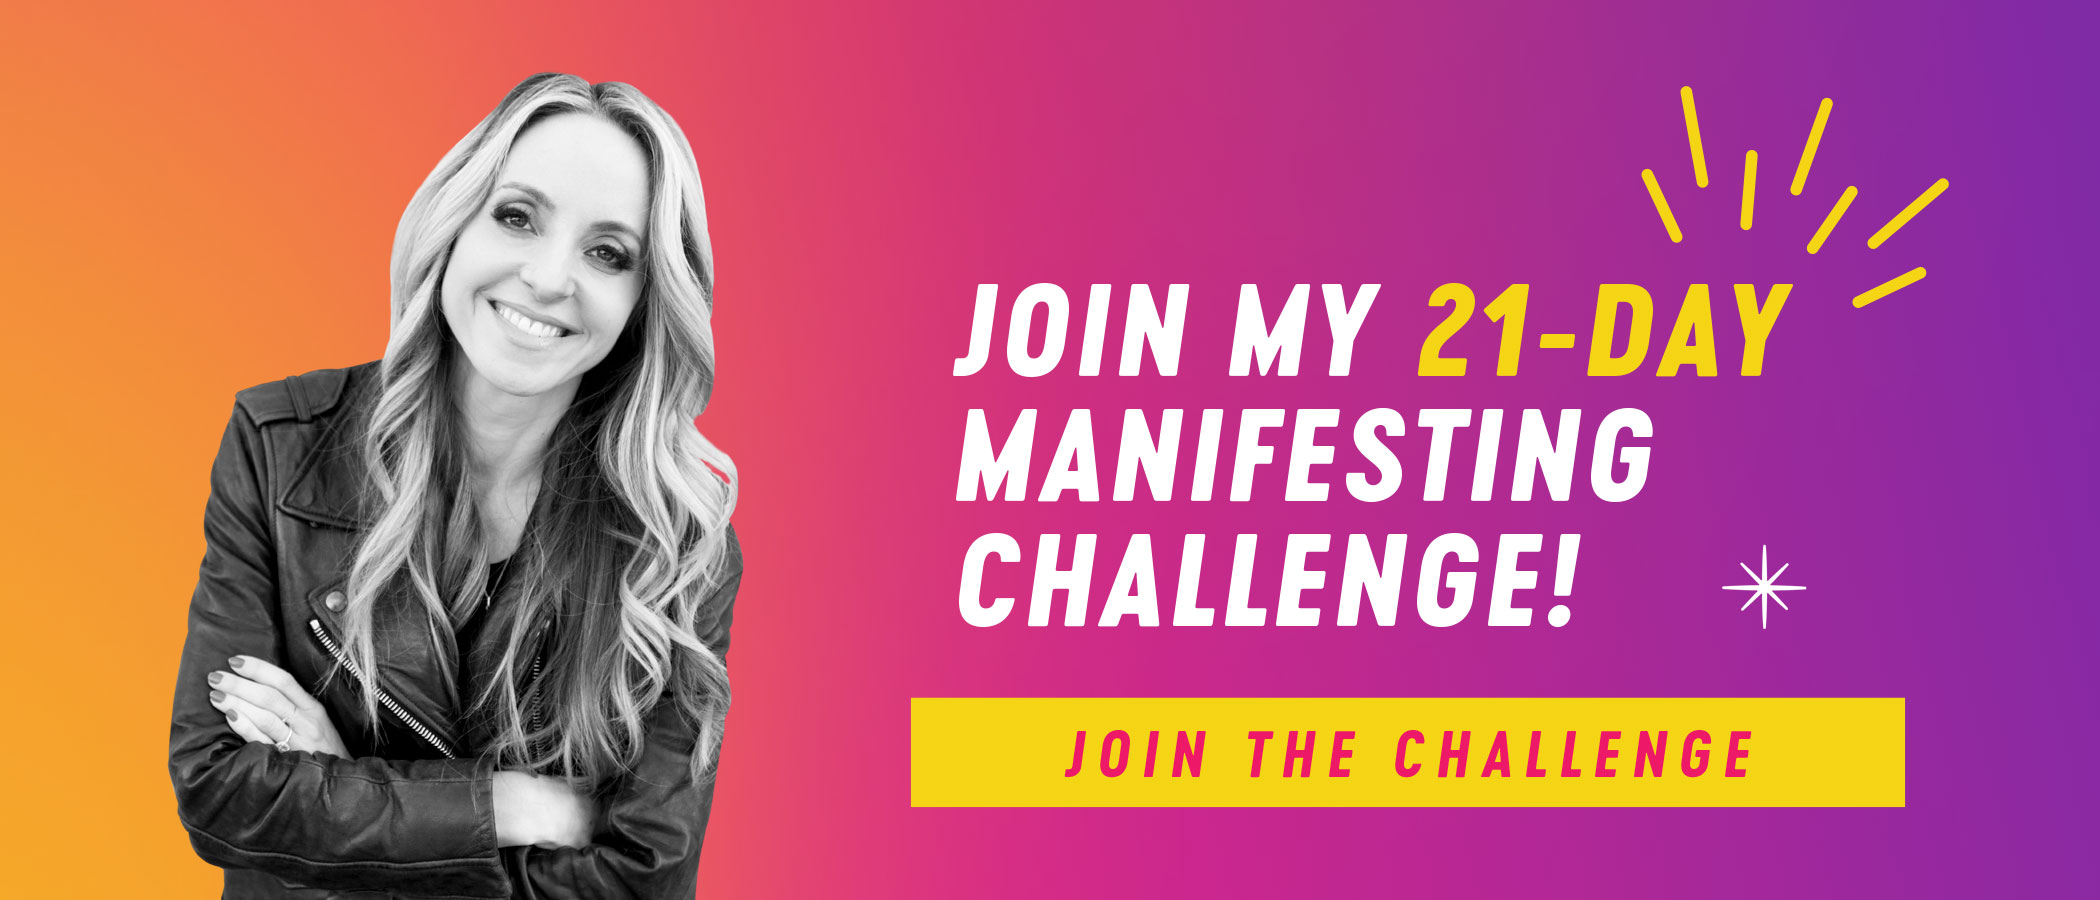 The Manifesting Challenge with Gabby Bernstein